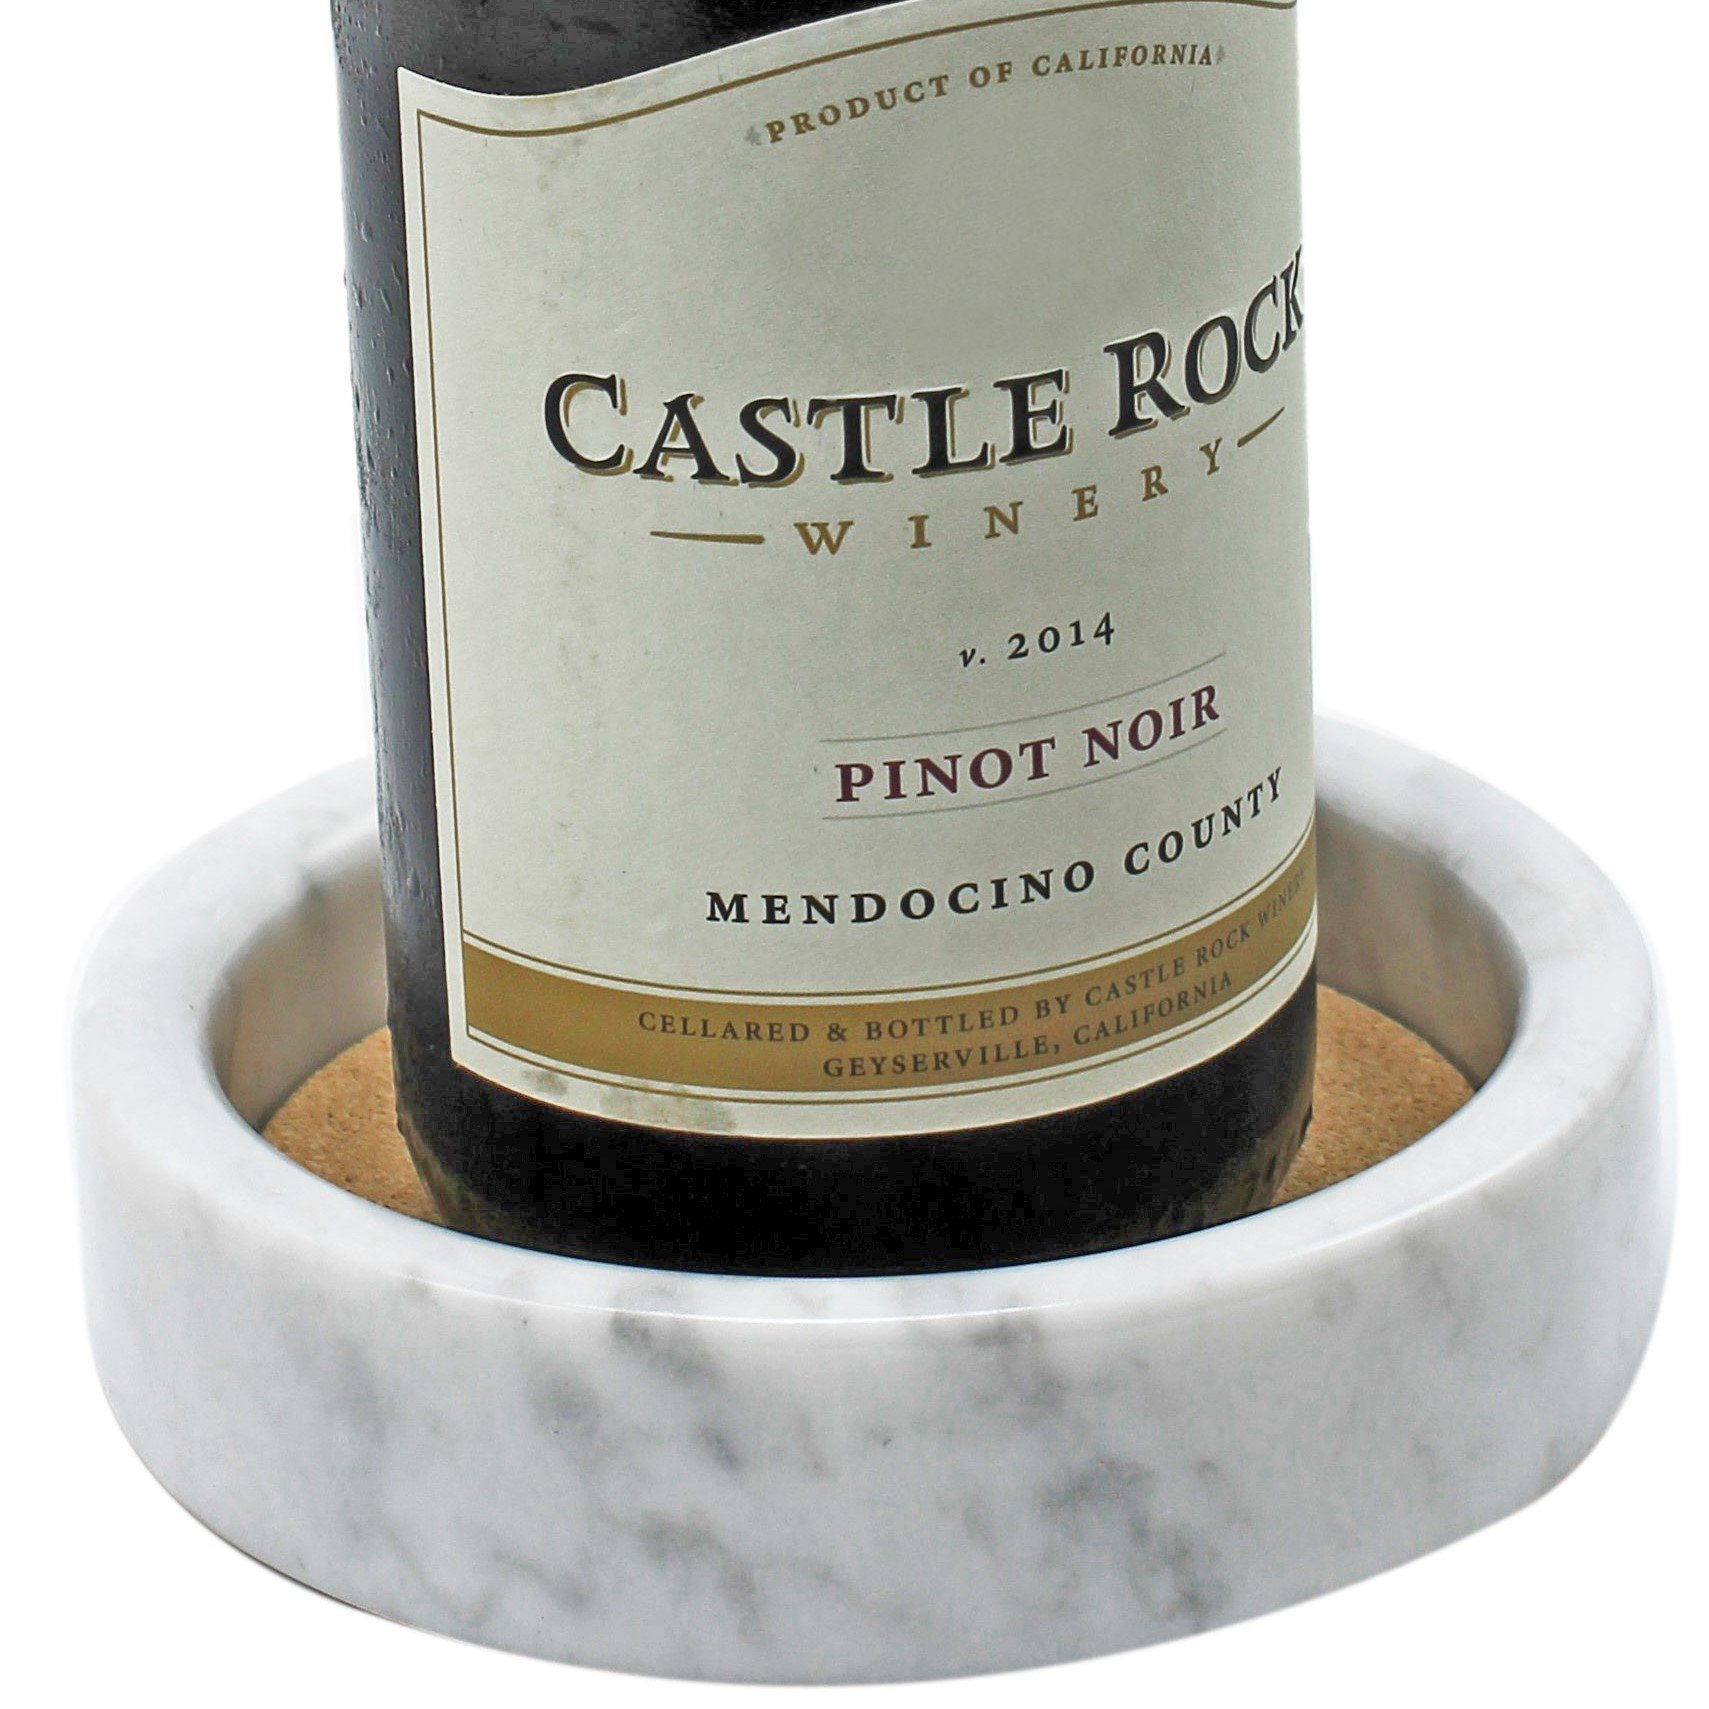 CraftsOfEgypt White - Marble Wine Bottle Coaster - Coaster Absorbent Cork Holder Bottles and Any Occasion